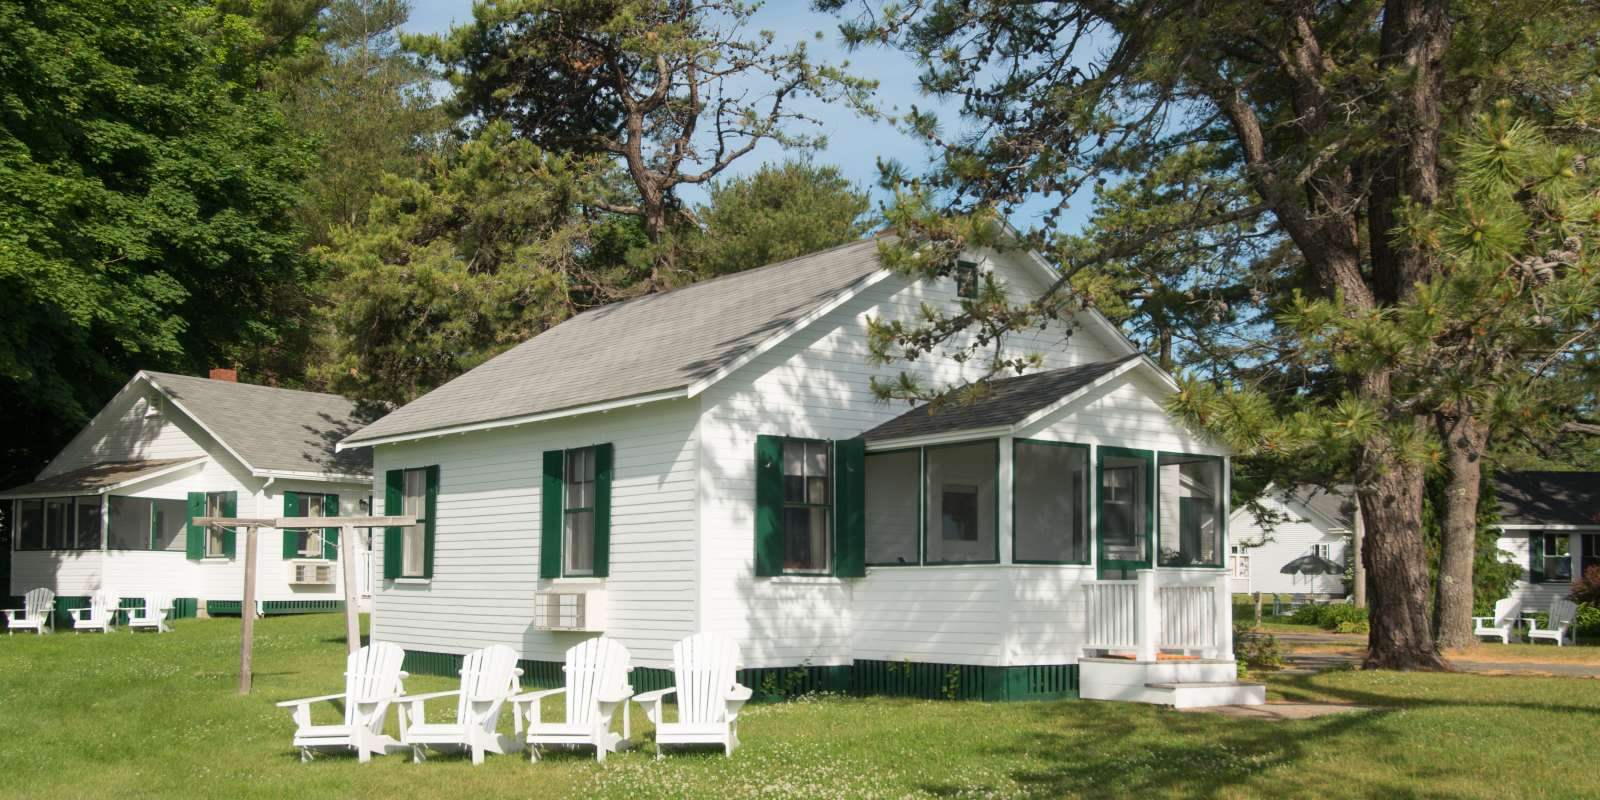 Freeport maine hotels motels bed and breakfasts-1087